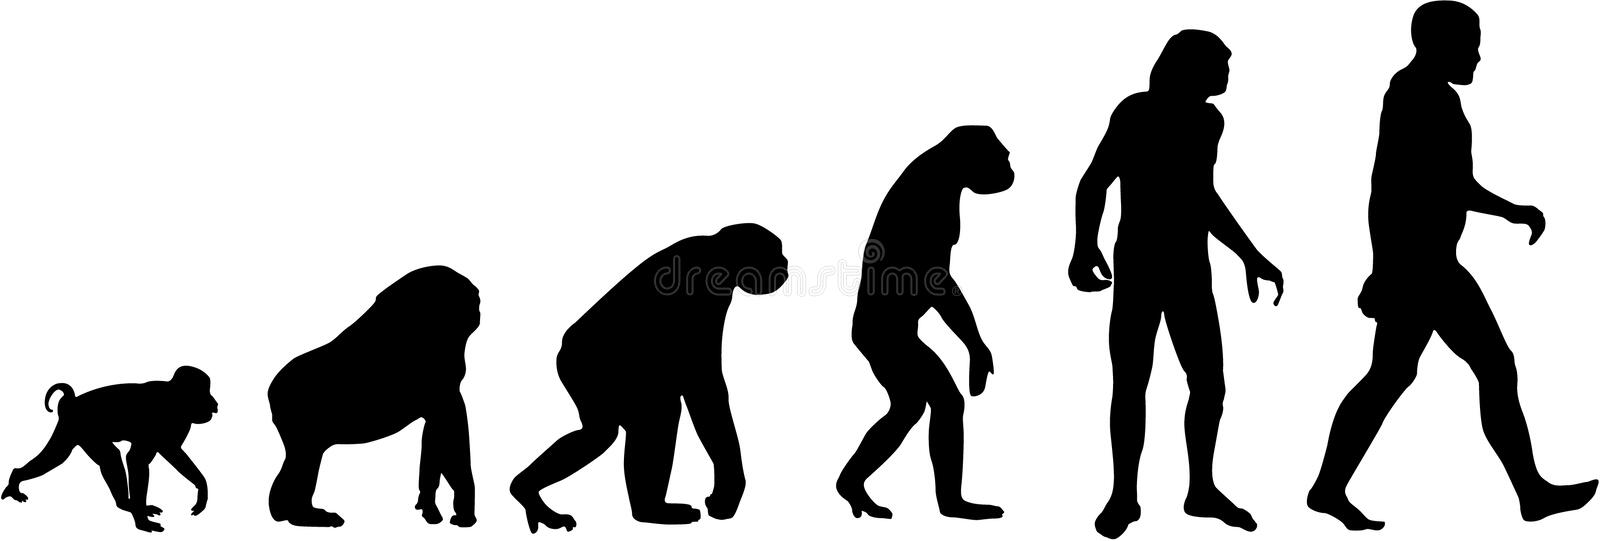 Evolution vector illustration